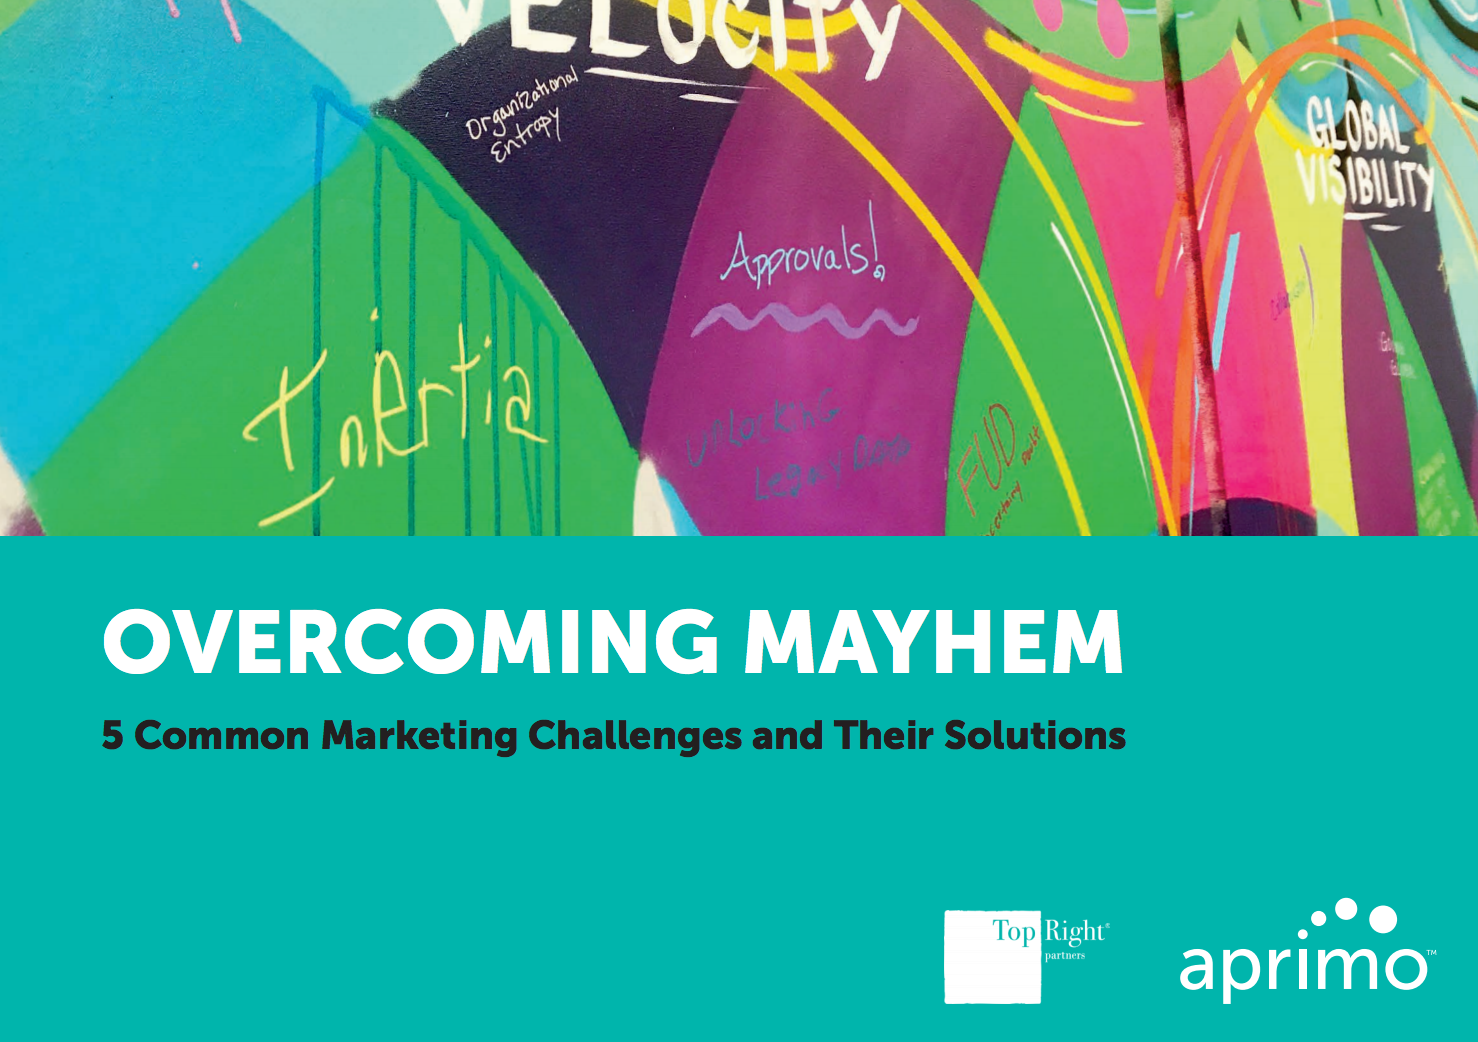 overcoming-mayhem-full-topright.png